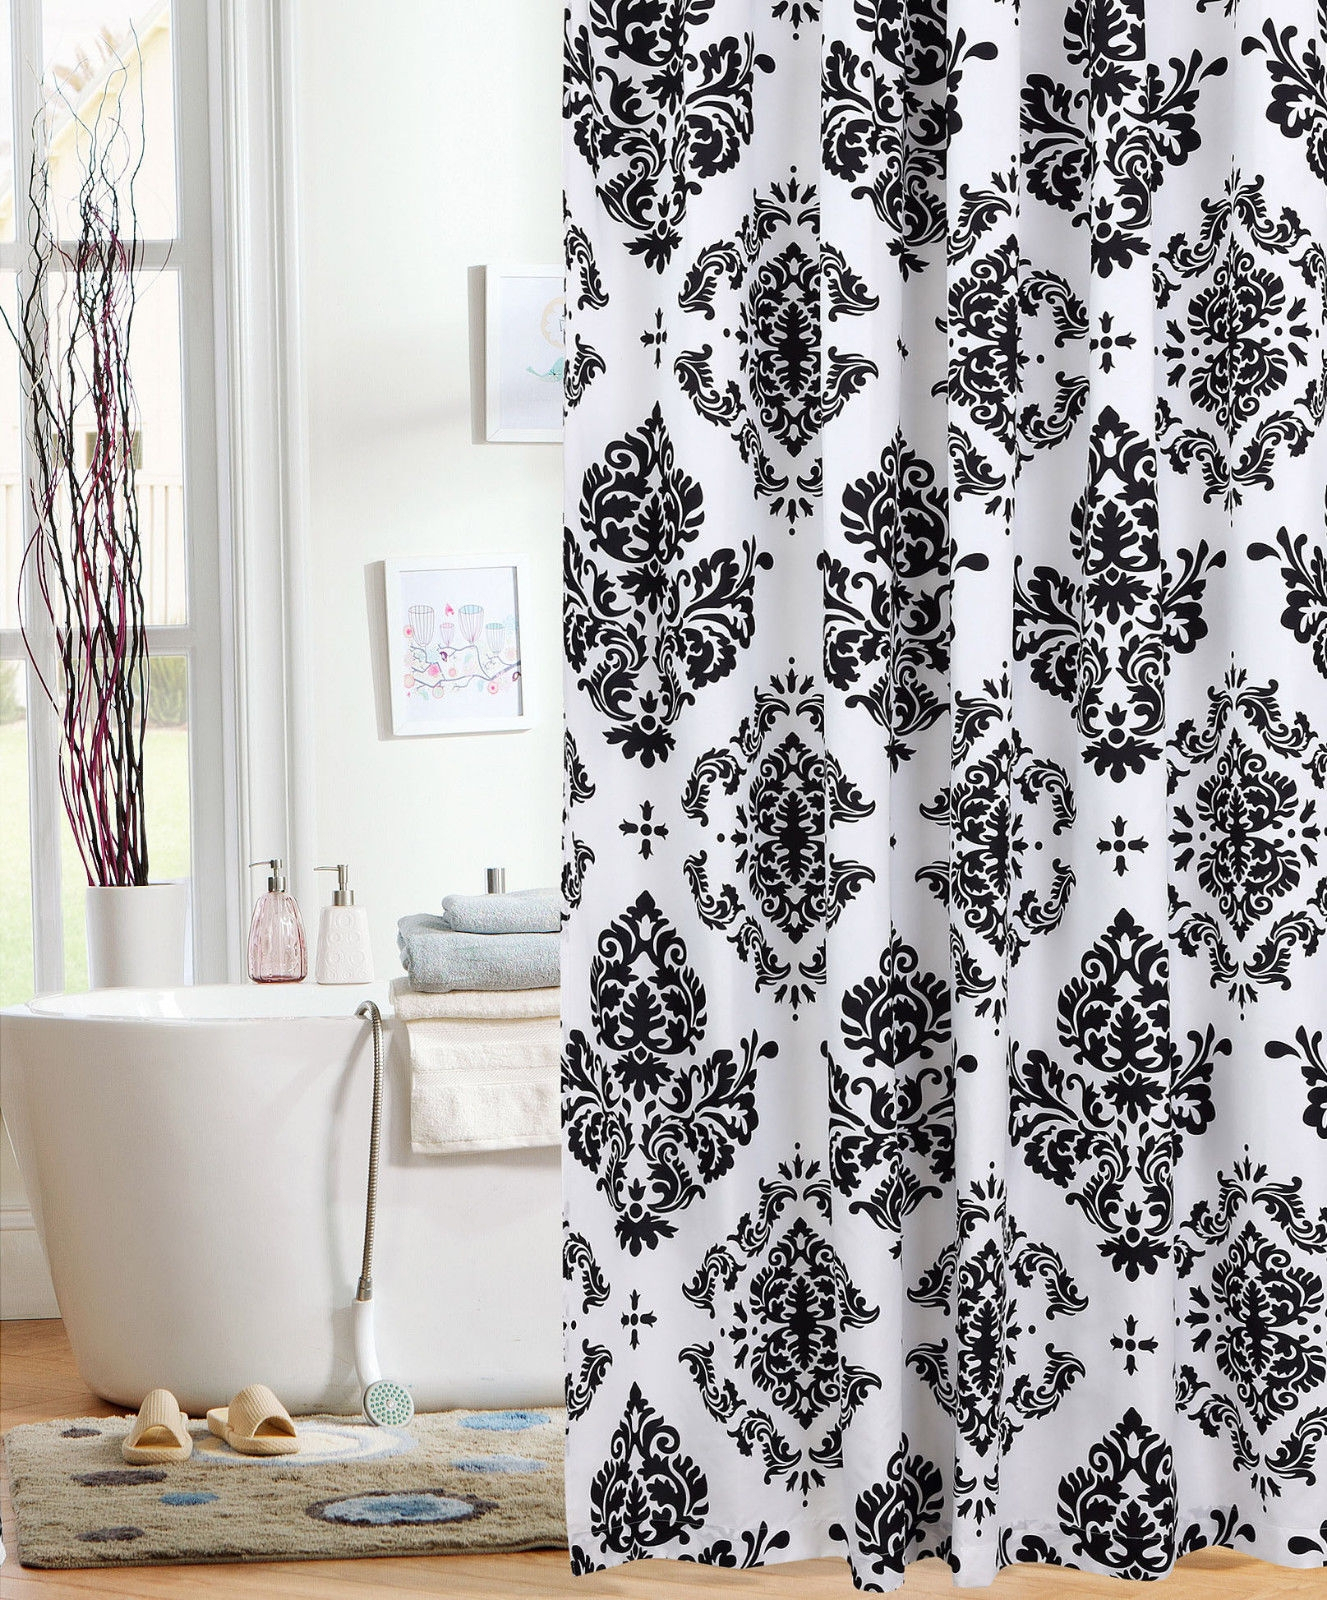 Black And White Damask Print Shower Curtain Shower Curtains Design inside dimensions 1327 X 1600